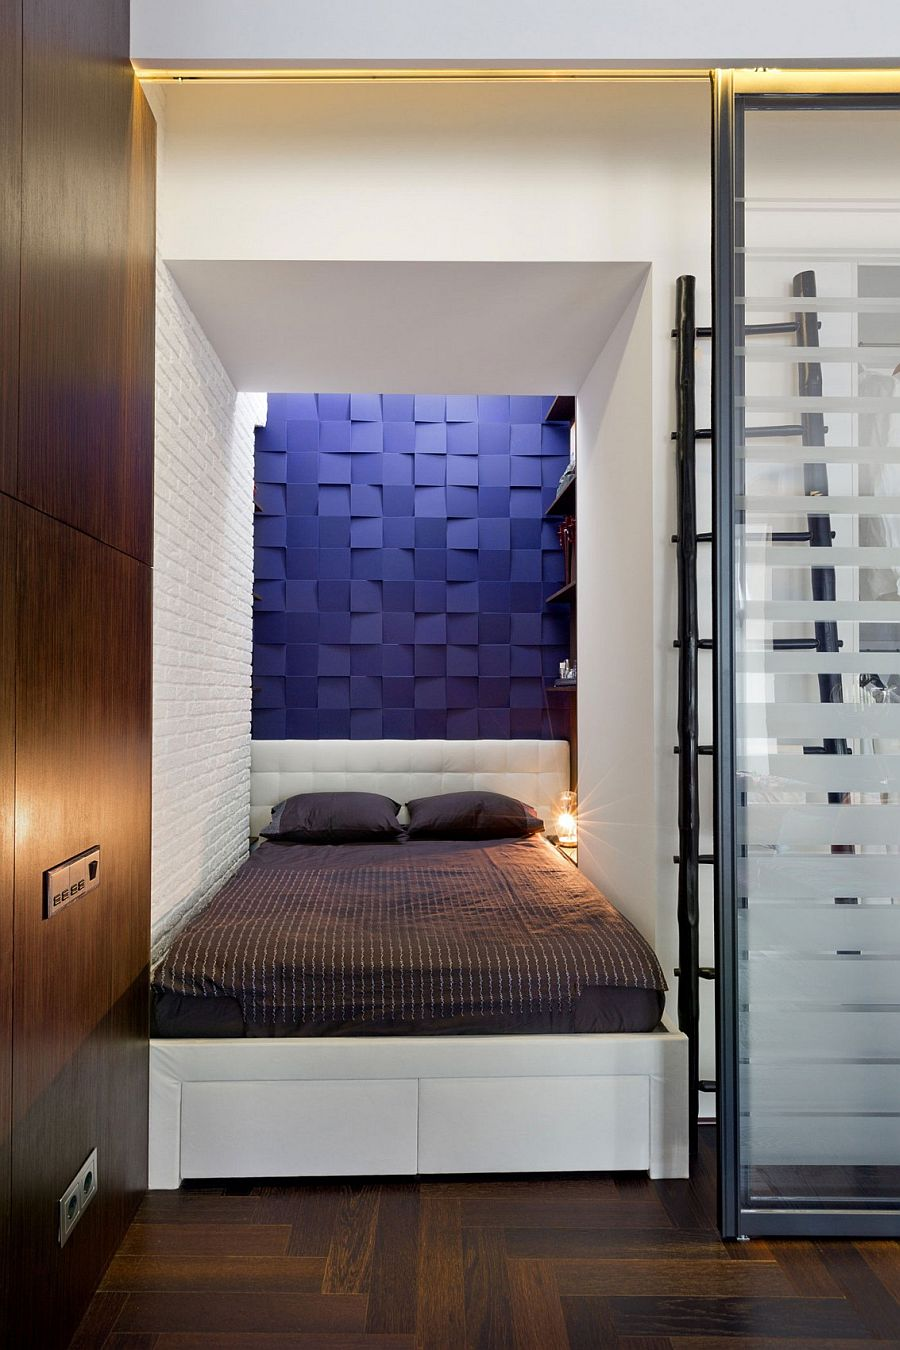 Lovely 3D wall panels breathe life into the tiny bedroom